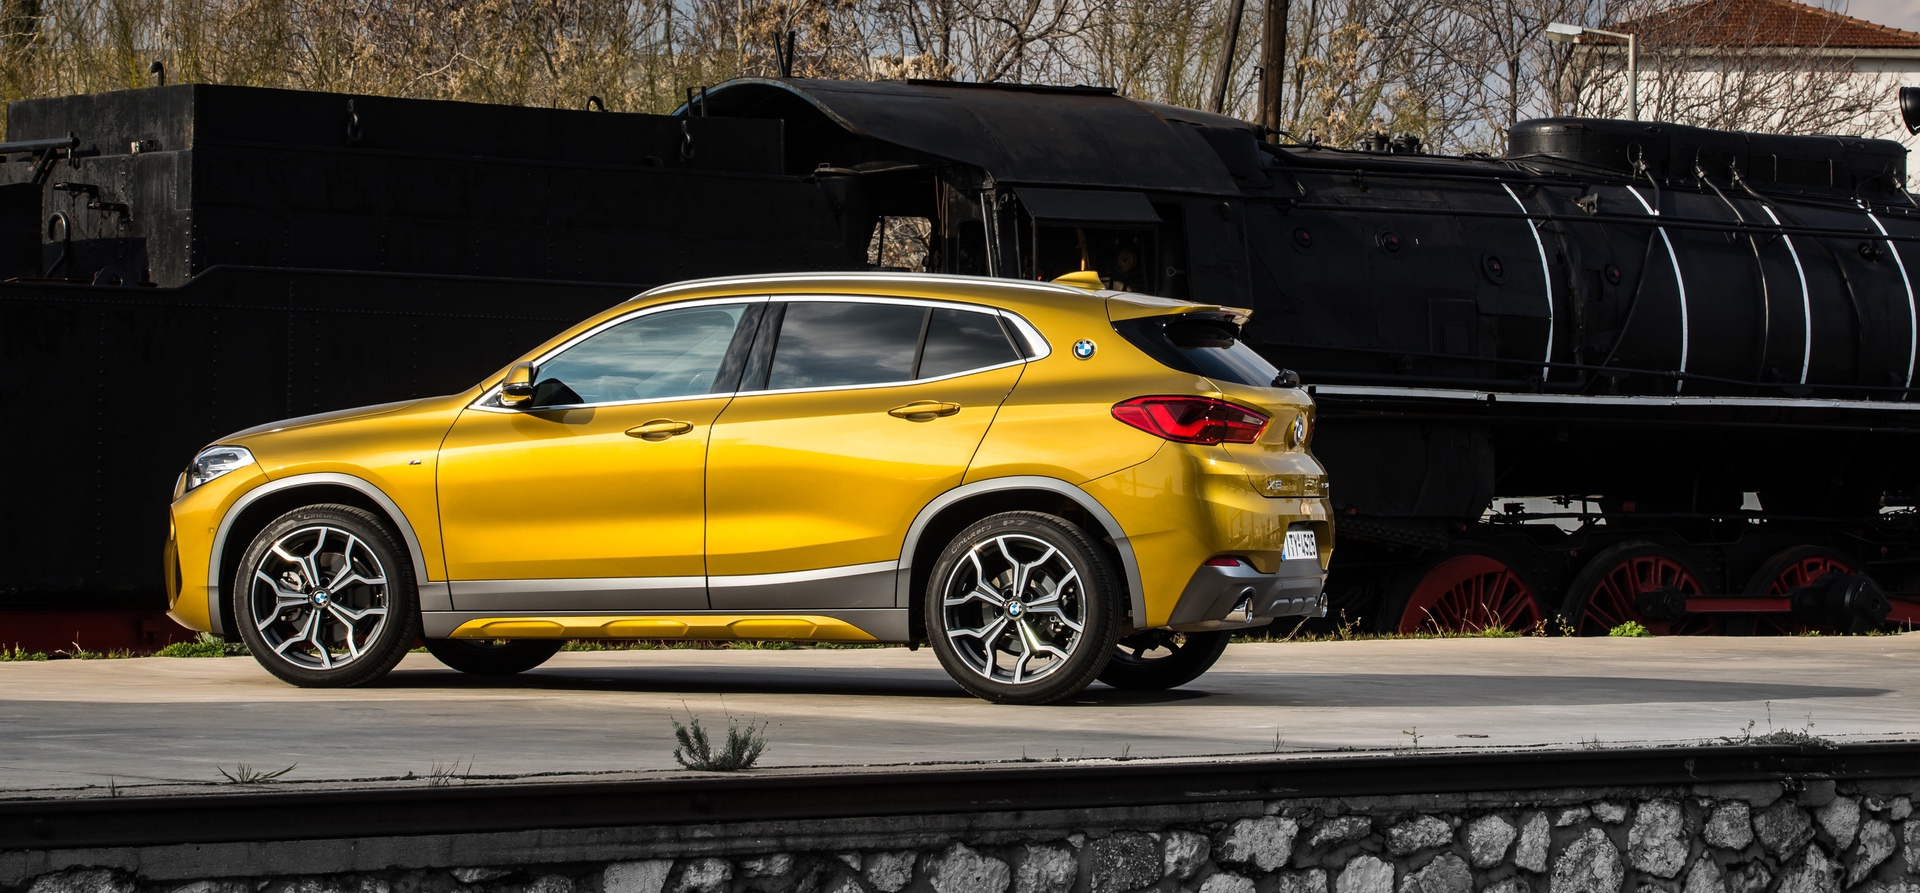 BMW_X2_Greek_presskit_0087